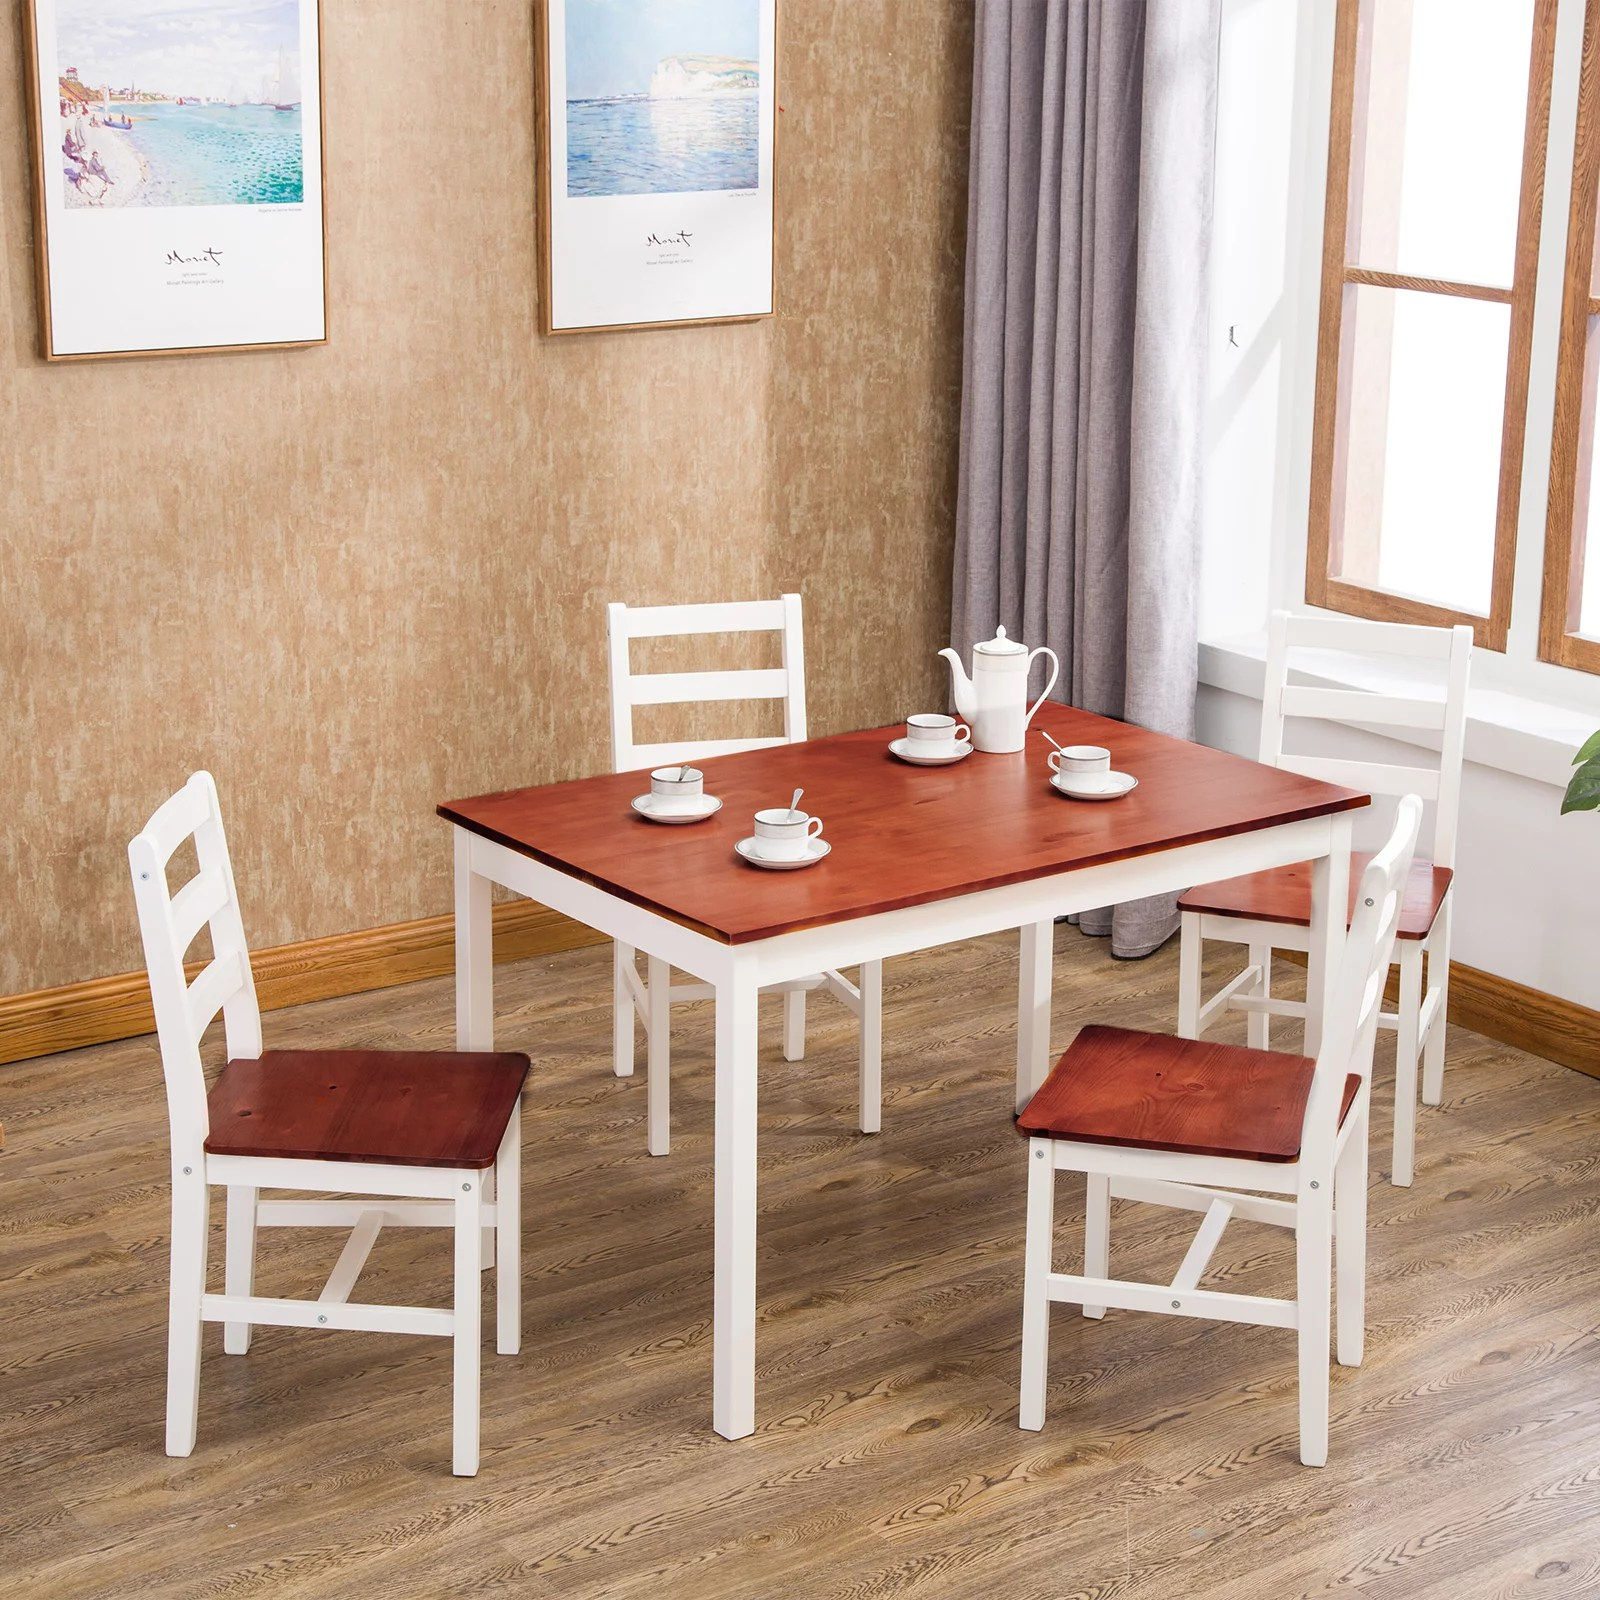 Mecor 5 Piece Dining Table Set 4 Wood Chairs Kitchen Furniture Wood Walmart Com Walmart Com